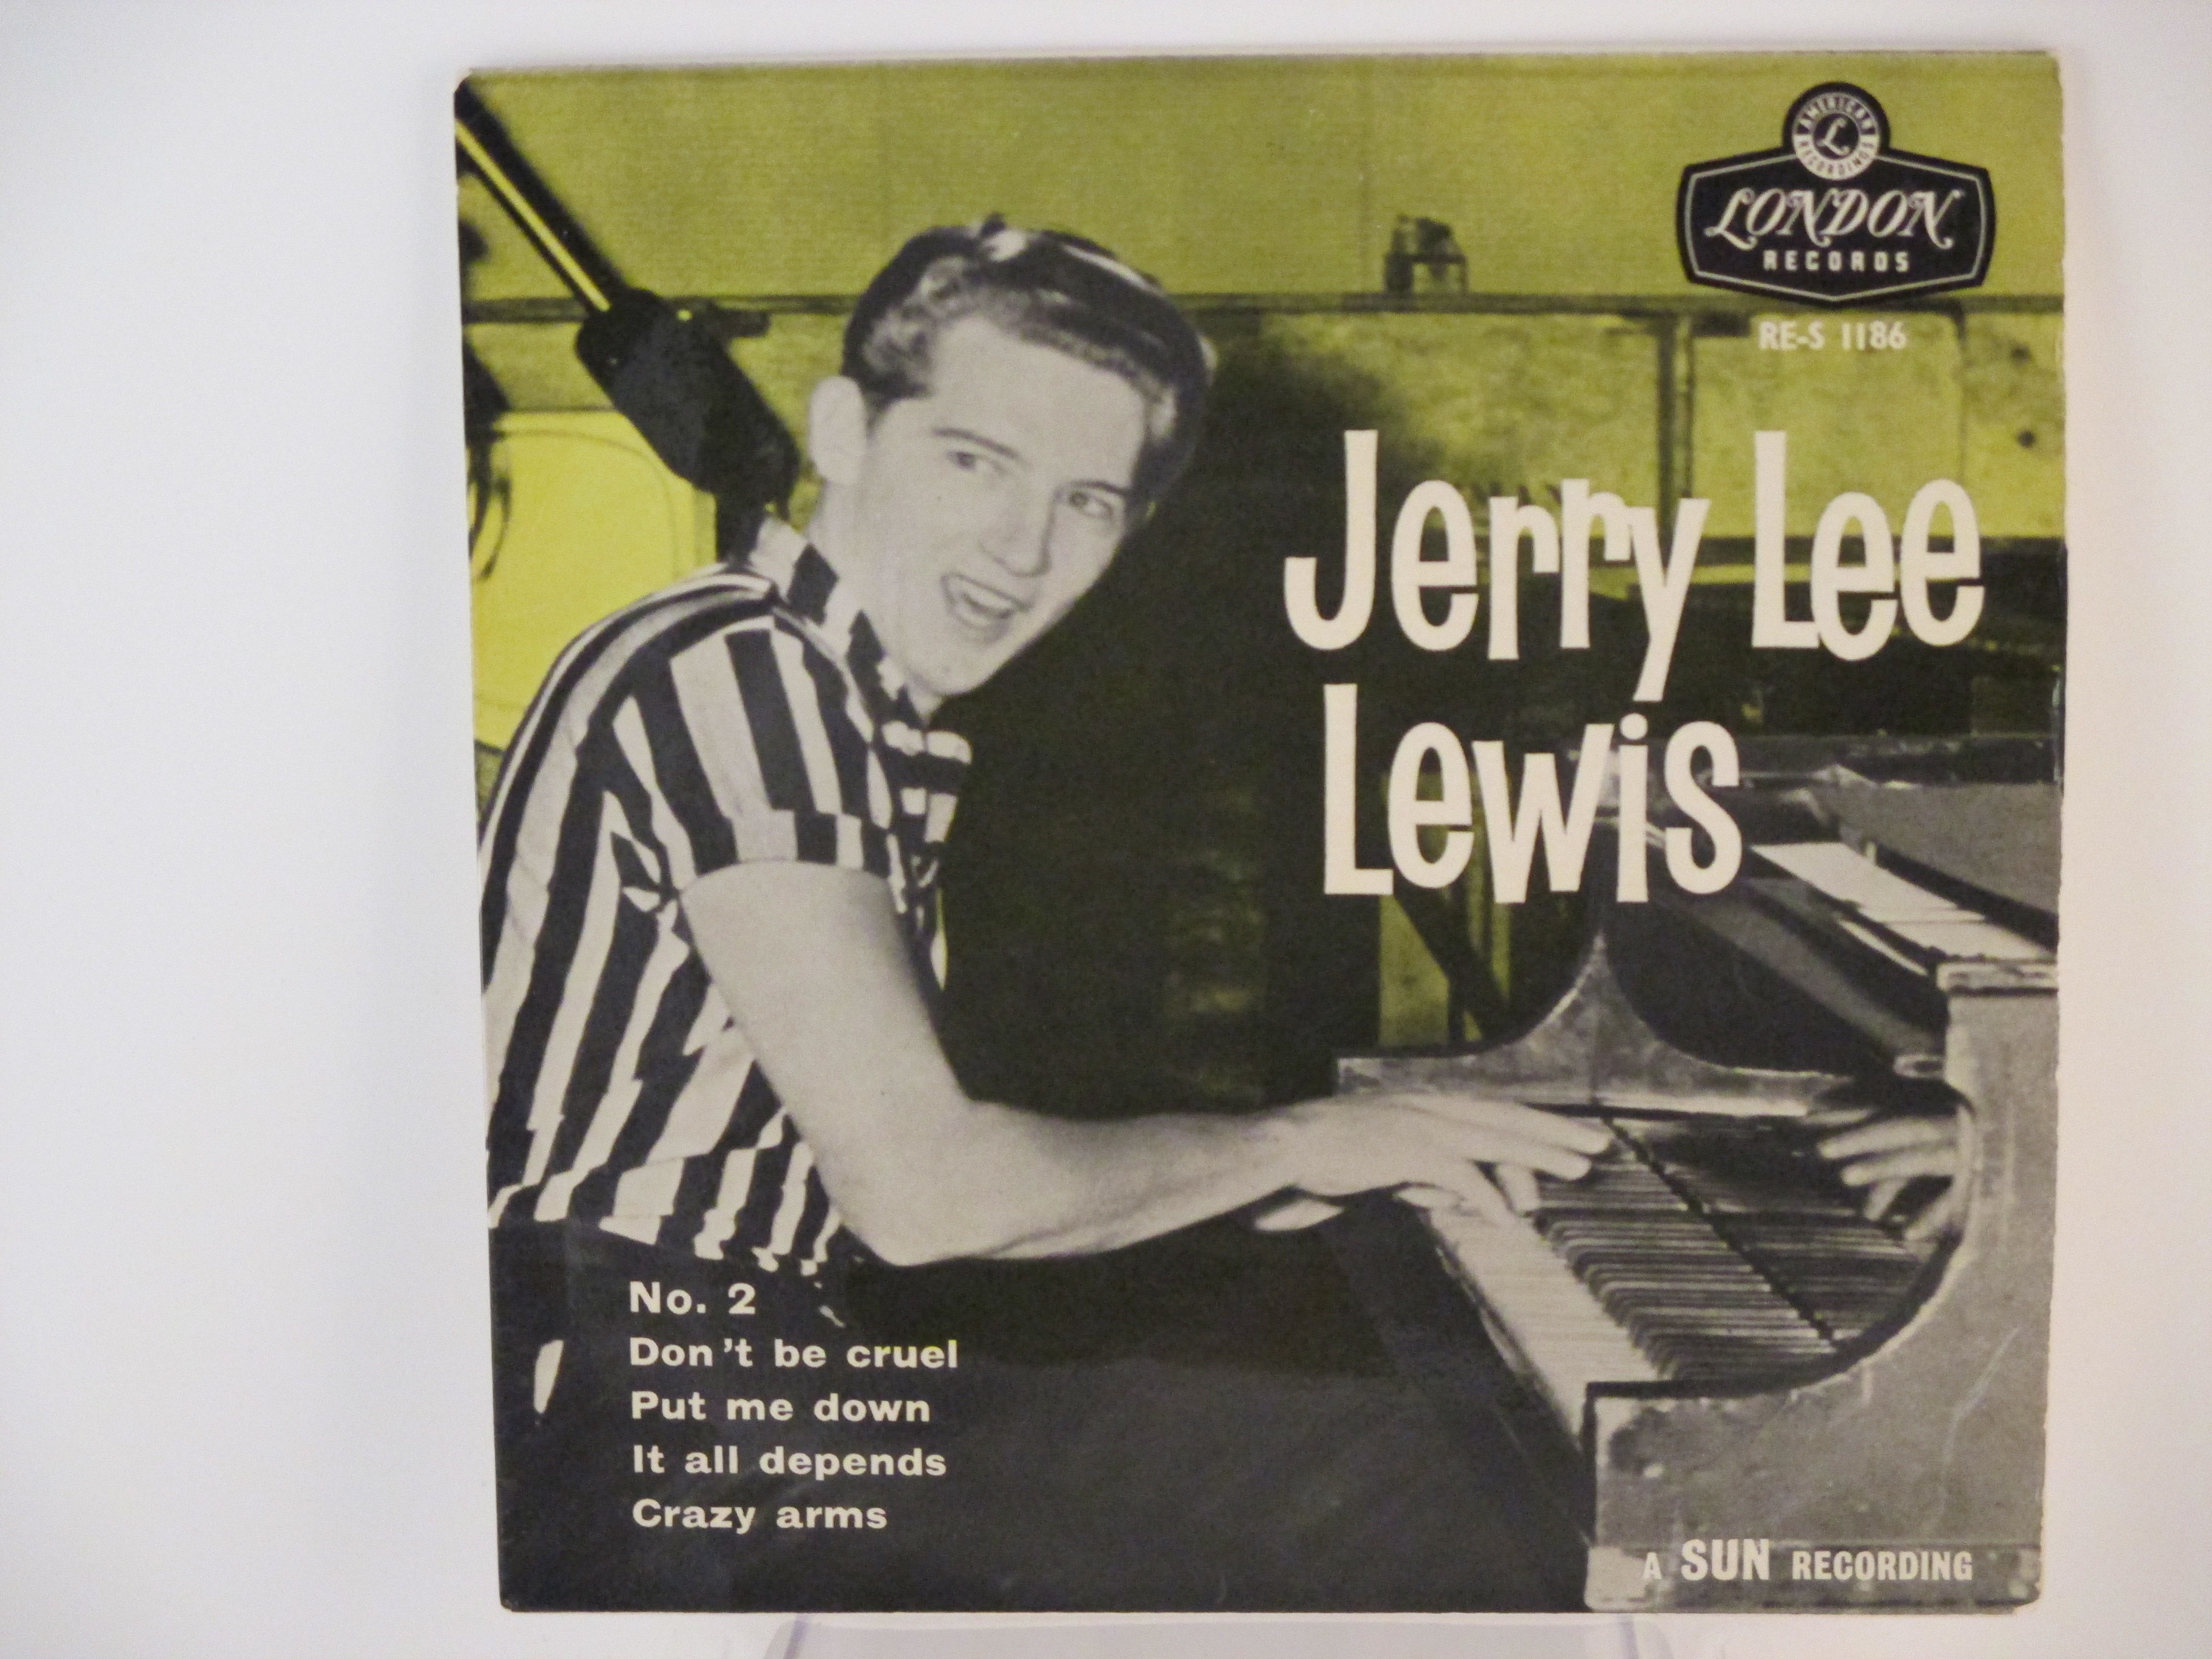 JERRY LEE LEWIS : (EP) Don't be cruel / Put me down / It all depends / Crazy arms